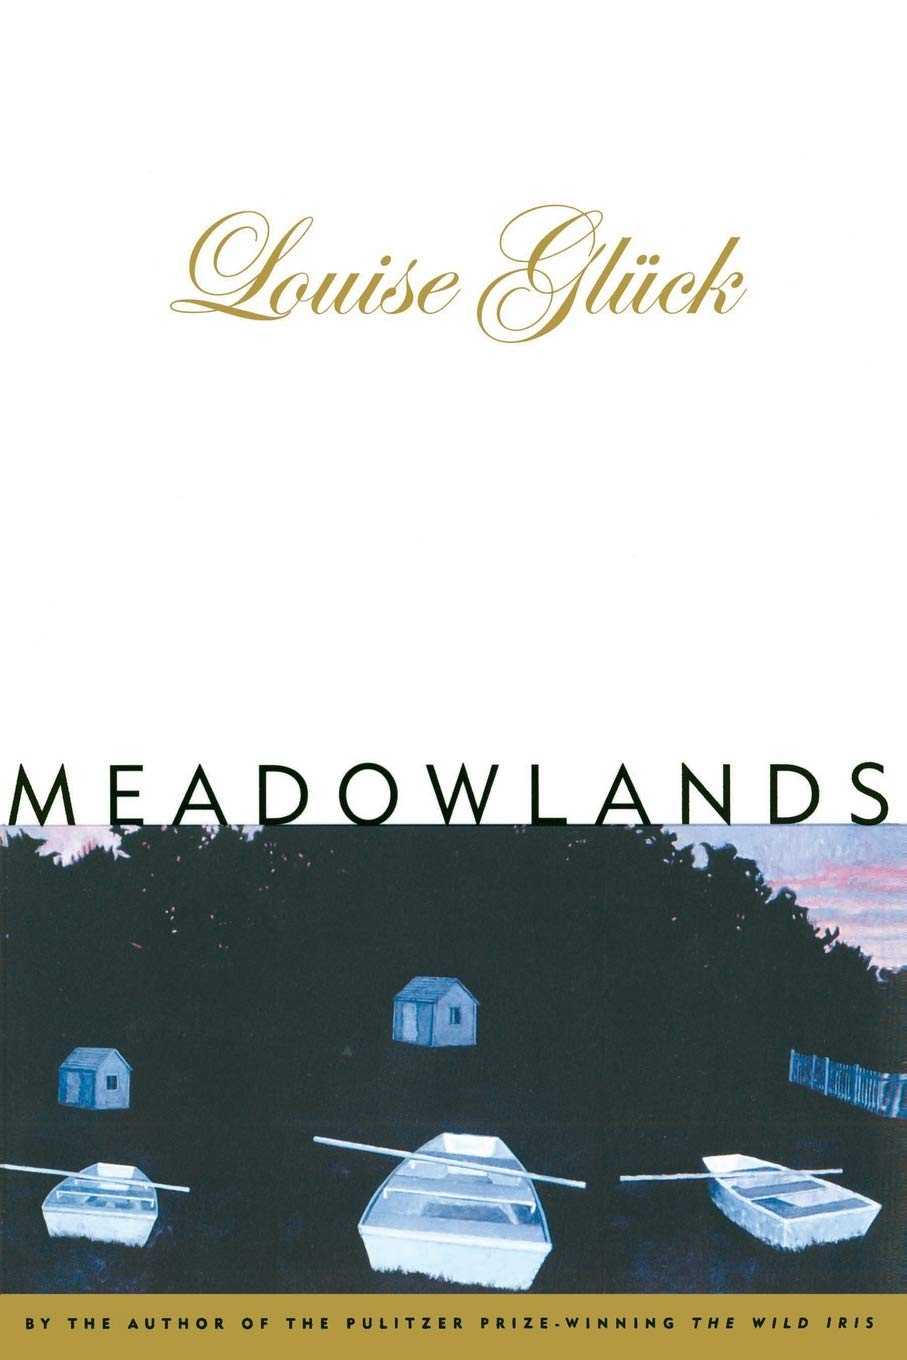 Meadowlands by Louise Gluck